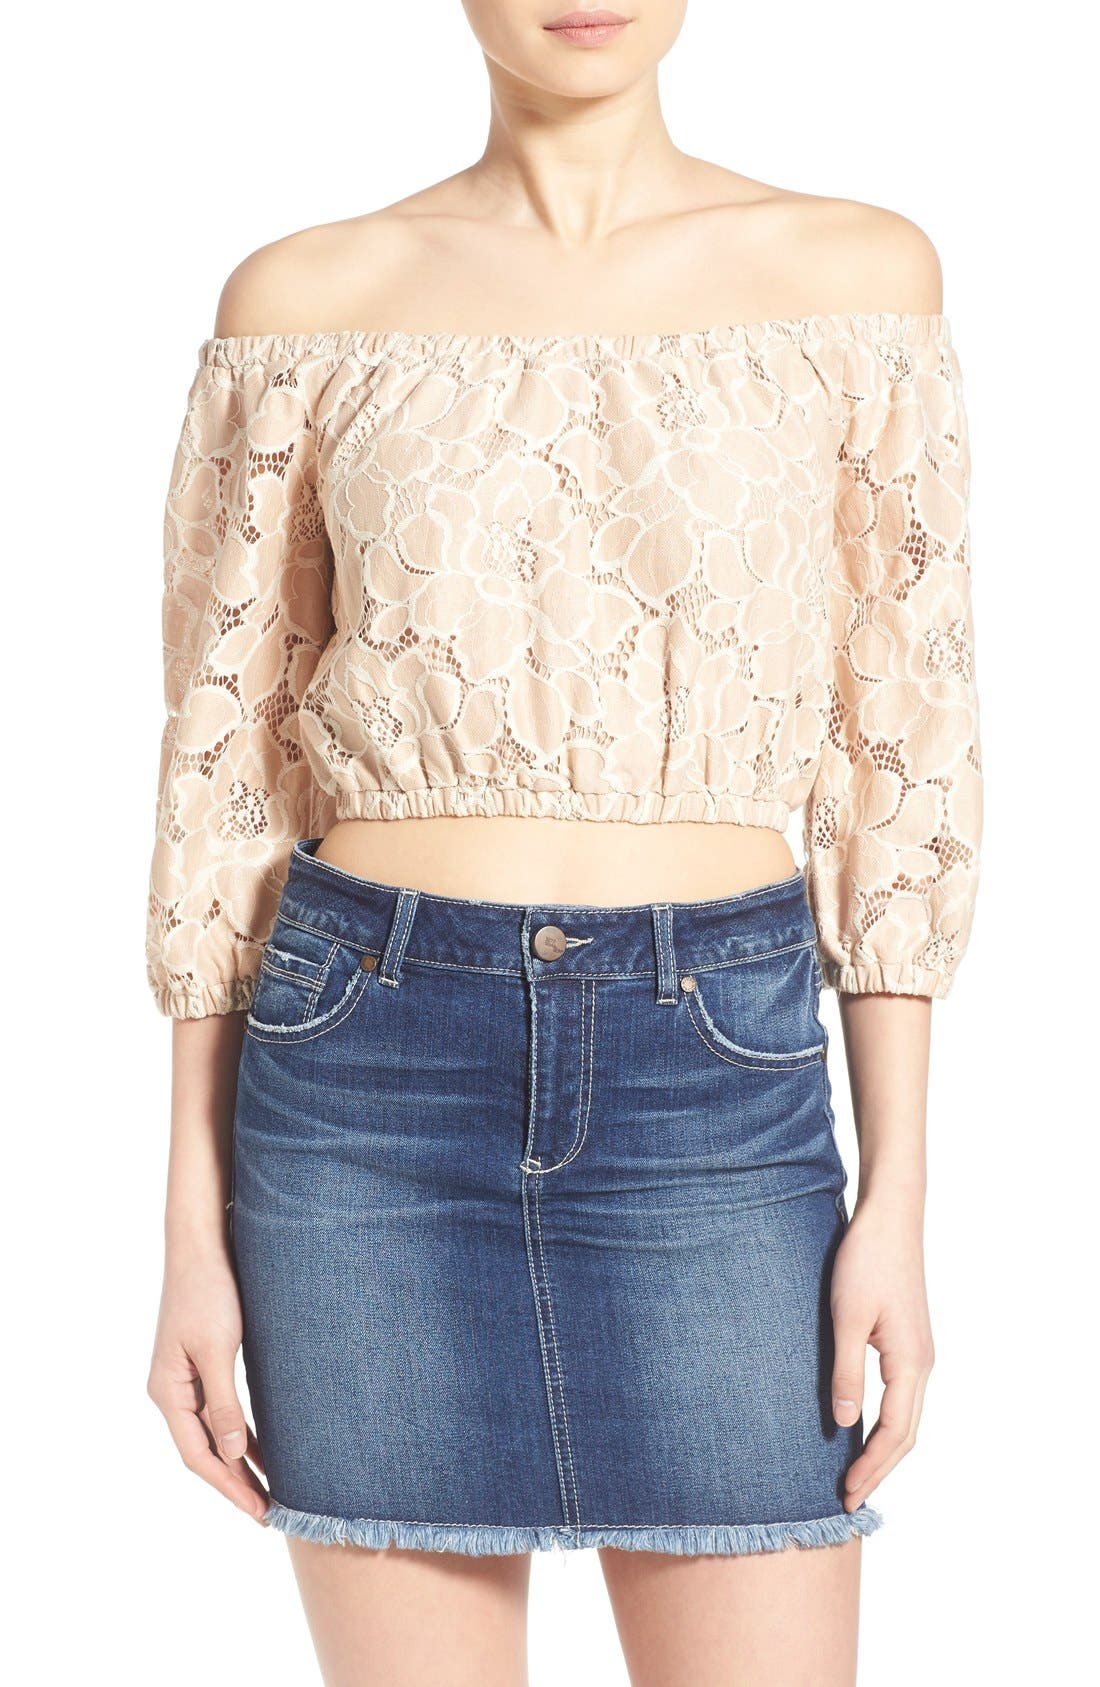 Alternate Image 1 Selected - Tularosa 'Hadley' Off the Shoulder Lace Crop Top